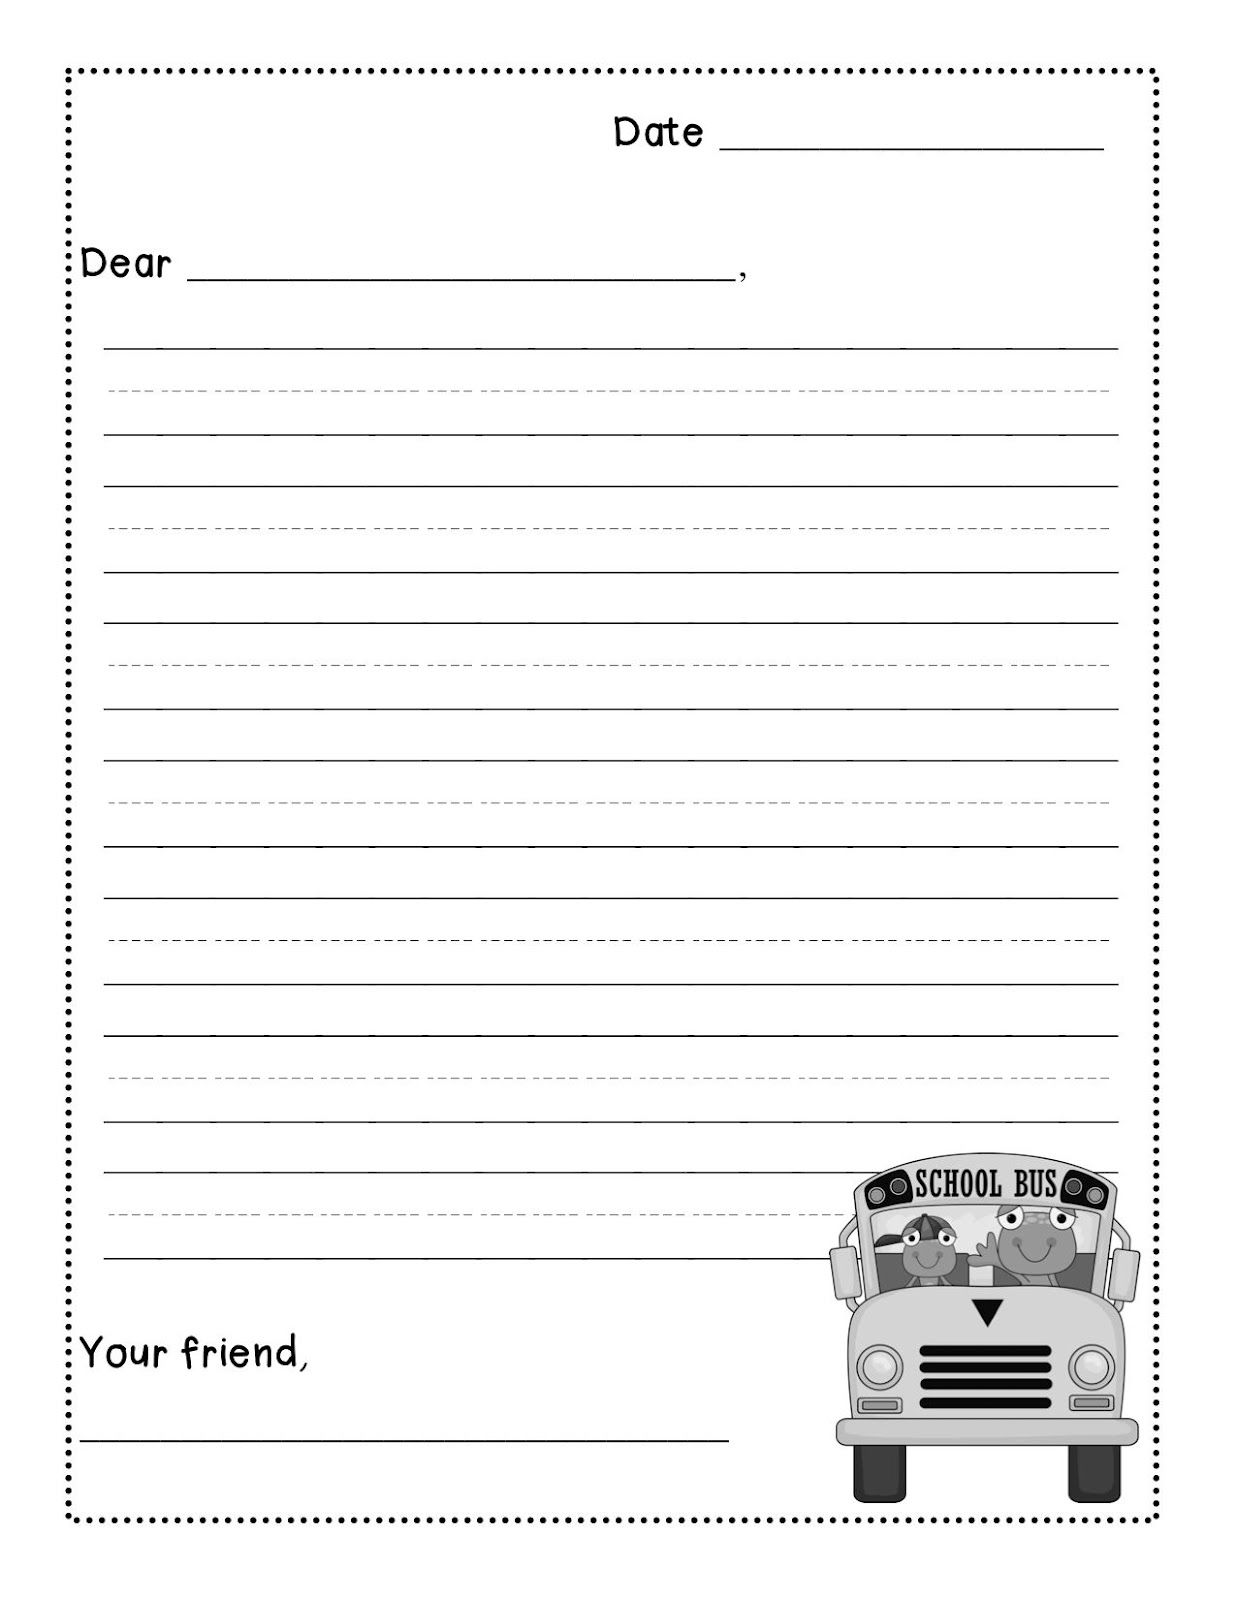 Nice Friendly Letter Writing Freebie   Levelized Templates Up For Grabs Within Letter Writing Template